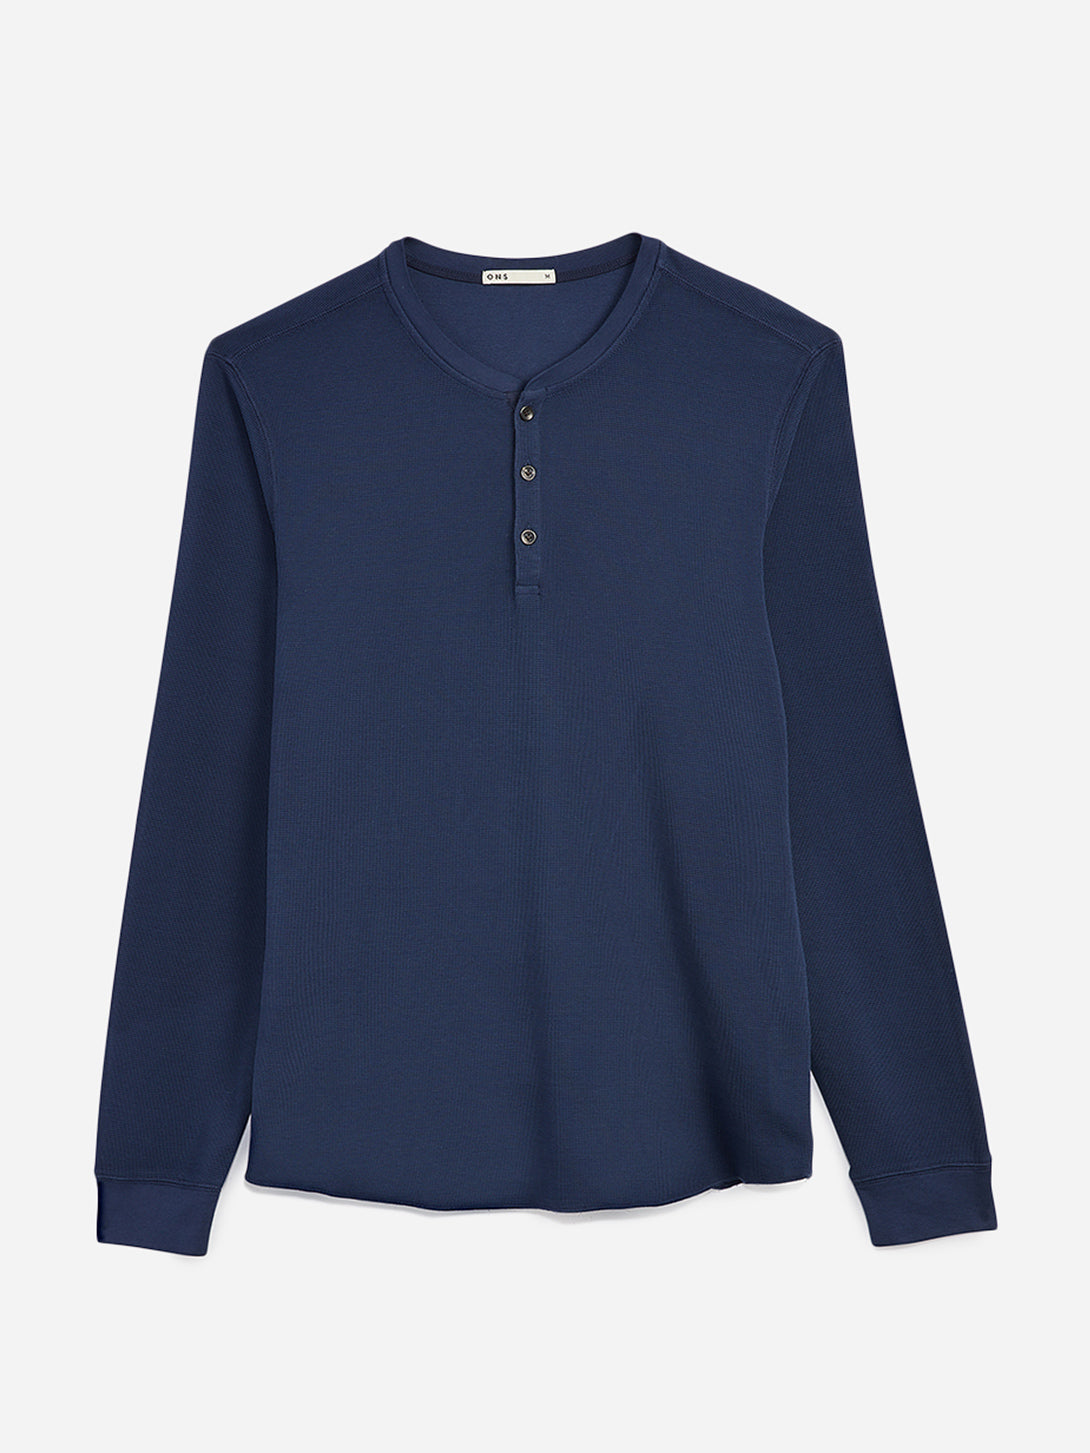 black friday deals ONS Clothing Men's COURT WAFFLE HENLEY Pre-shrunk Cotton in NAVY Pima Cotton